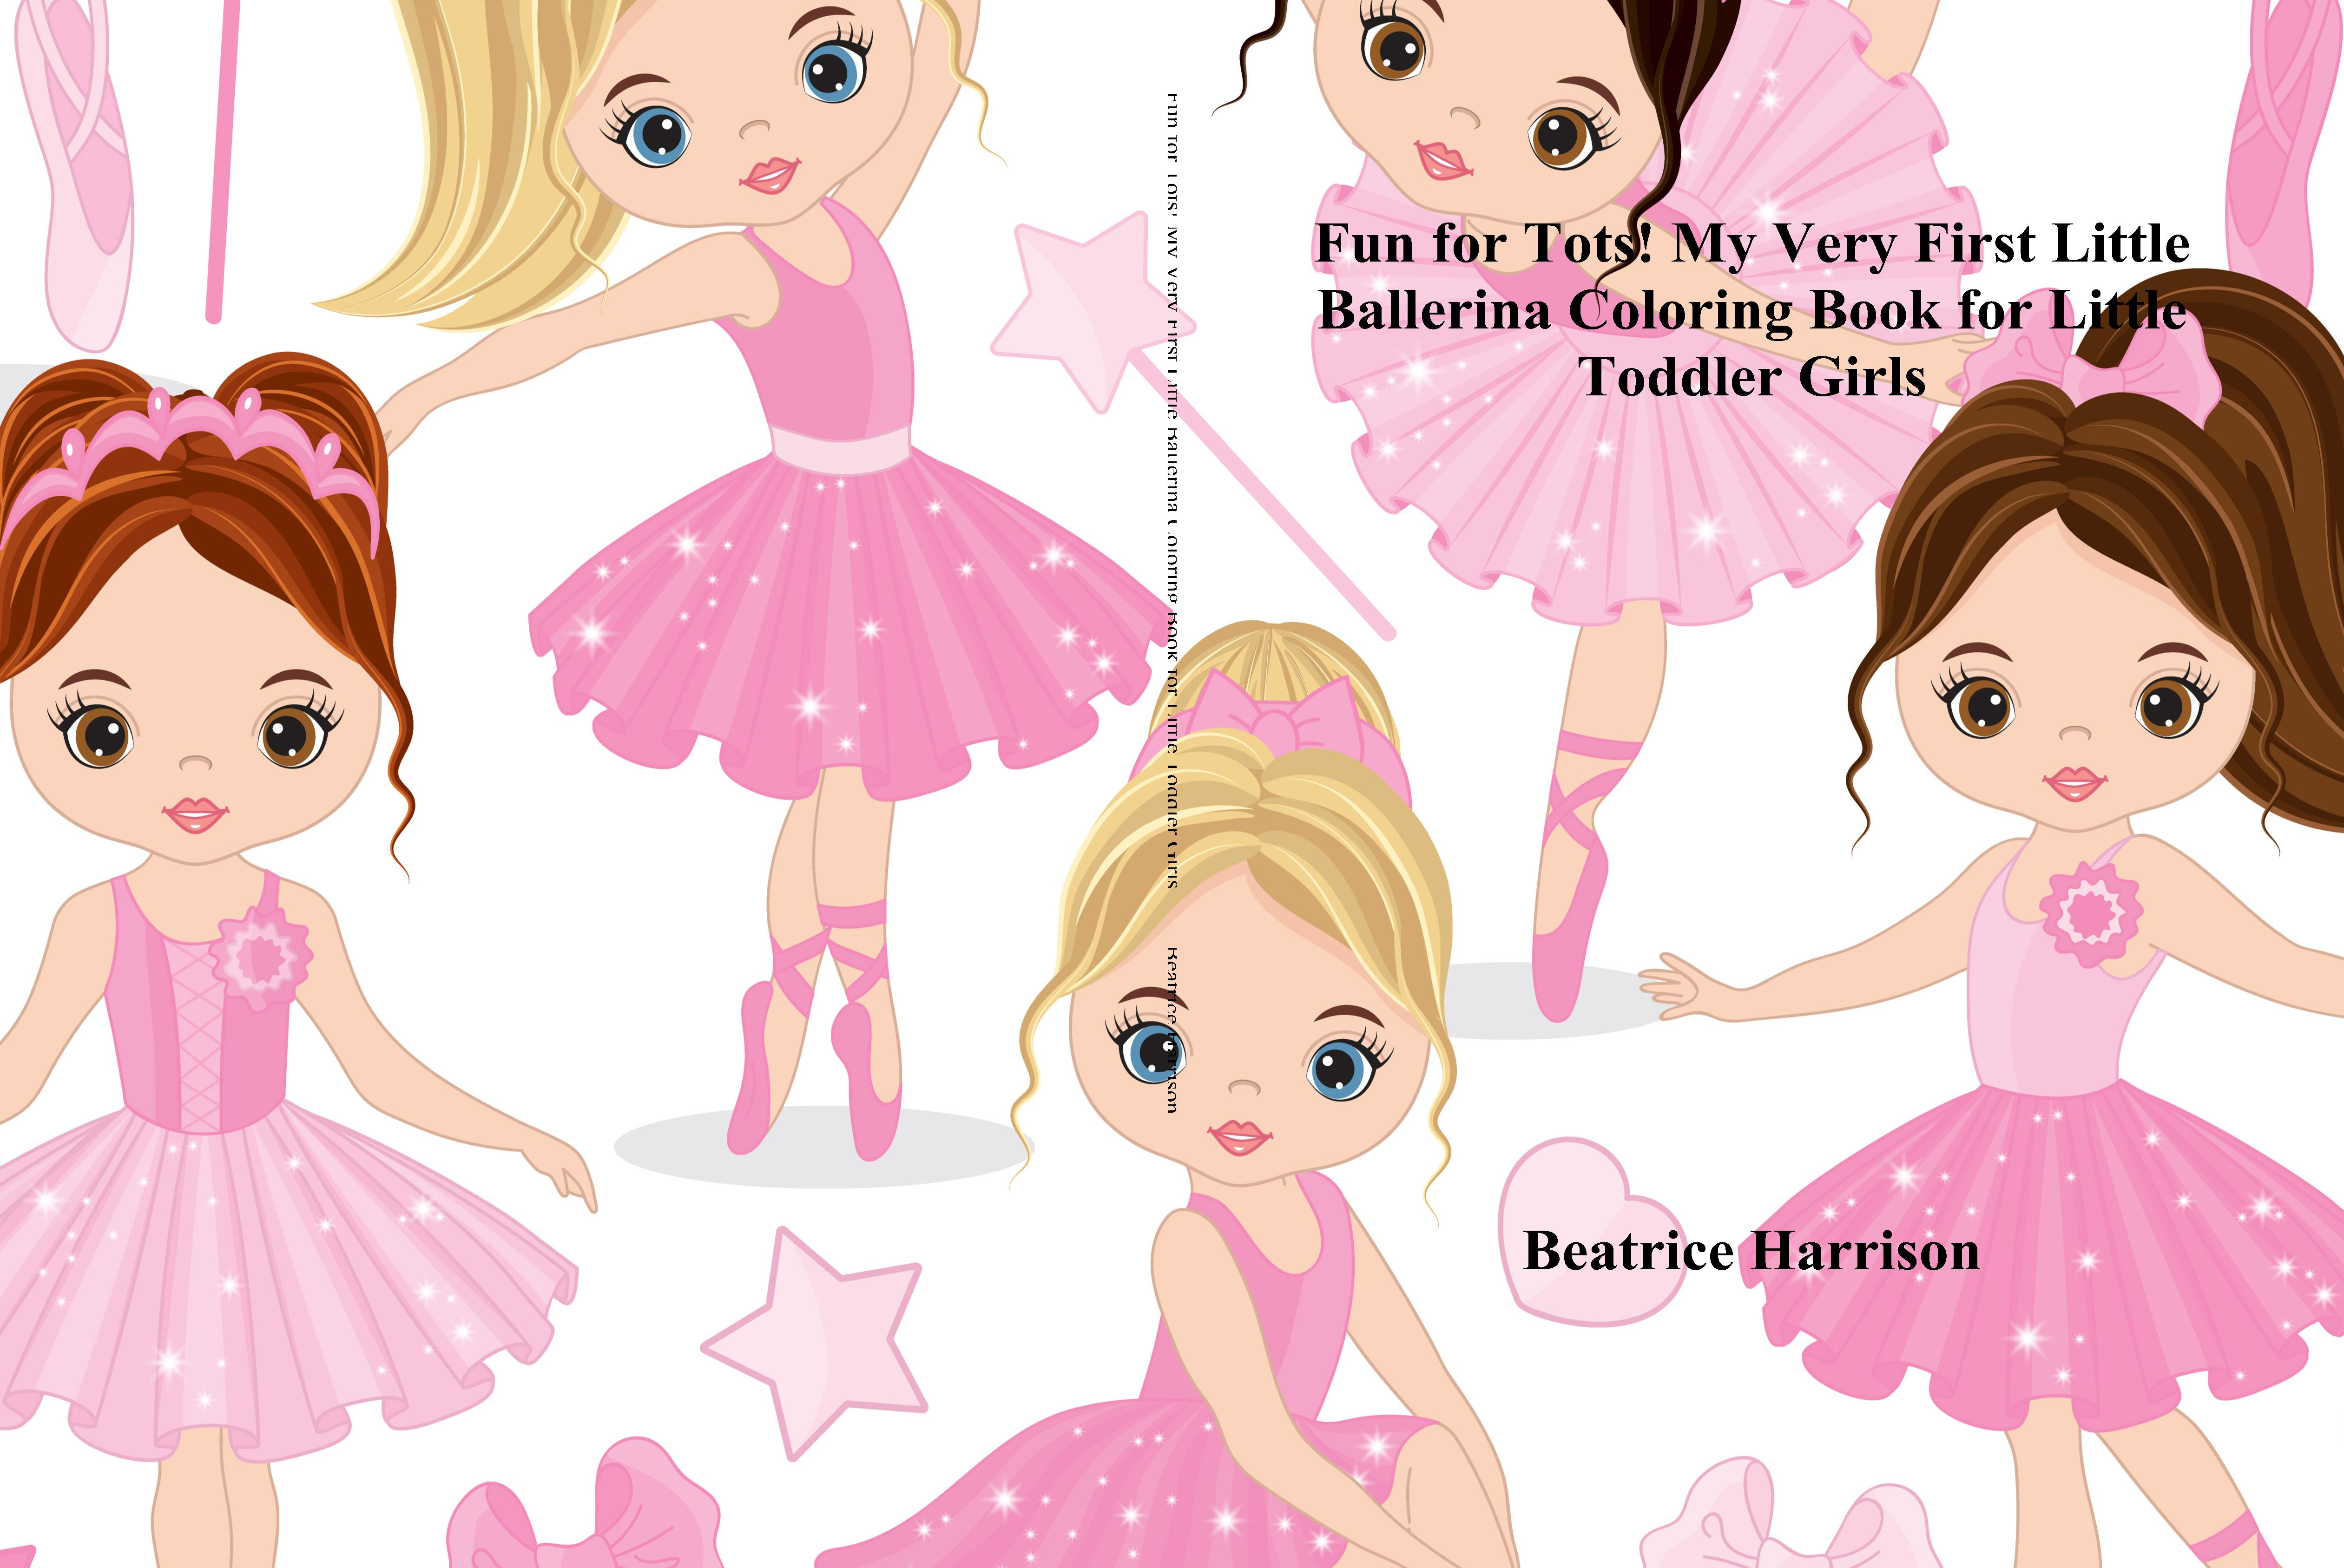 Fun for Tots! My Very First Little Ballerina Coloring Book for Little Toddler Girls cover image